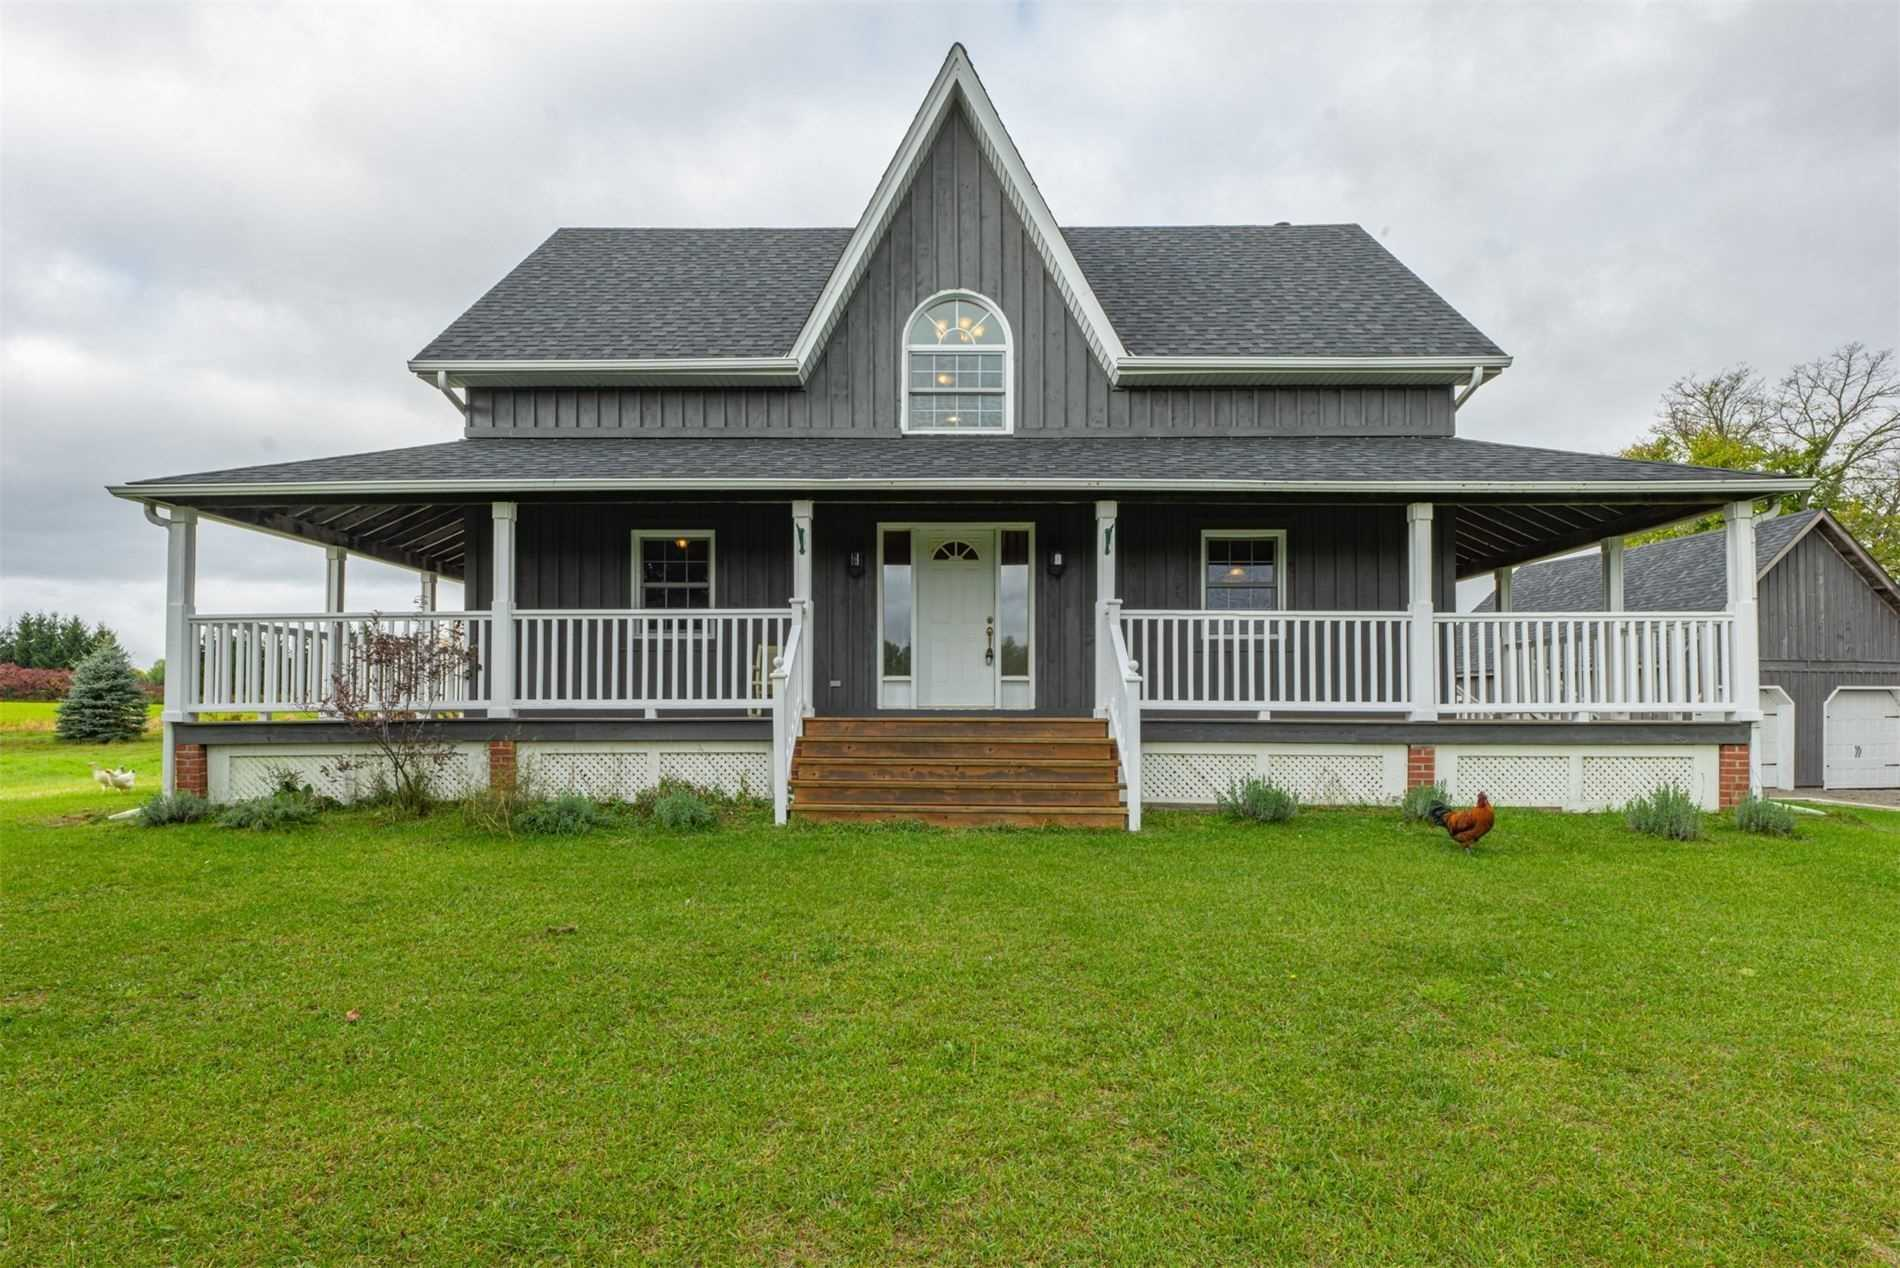 For Sale: 15 Lyons Lane, Uxbridge, ON | 3 Bed, 3 Bath House for $999999.00. See 40 photos!